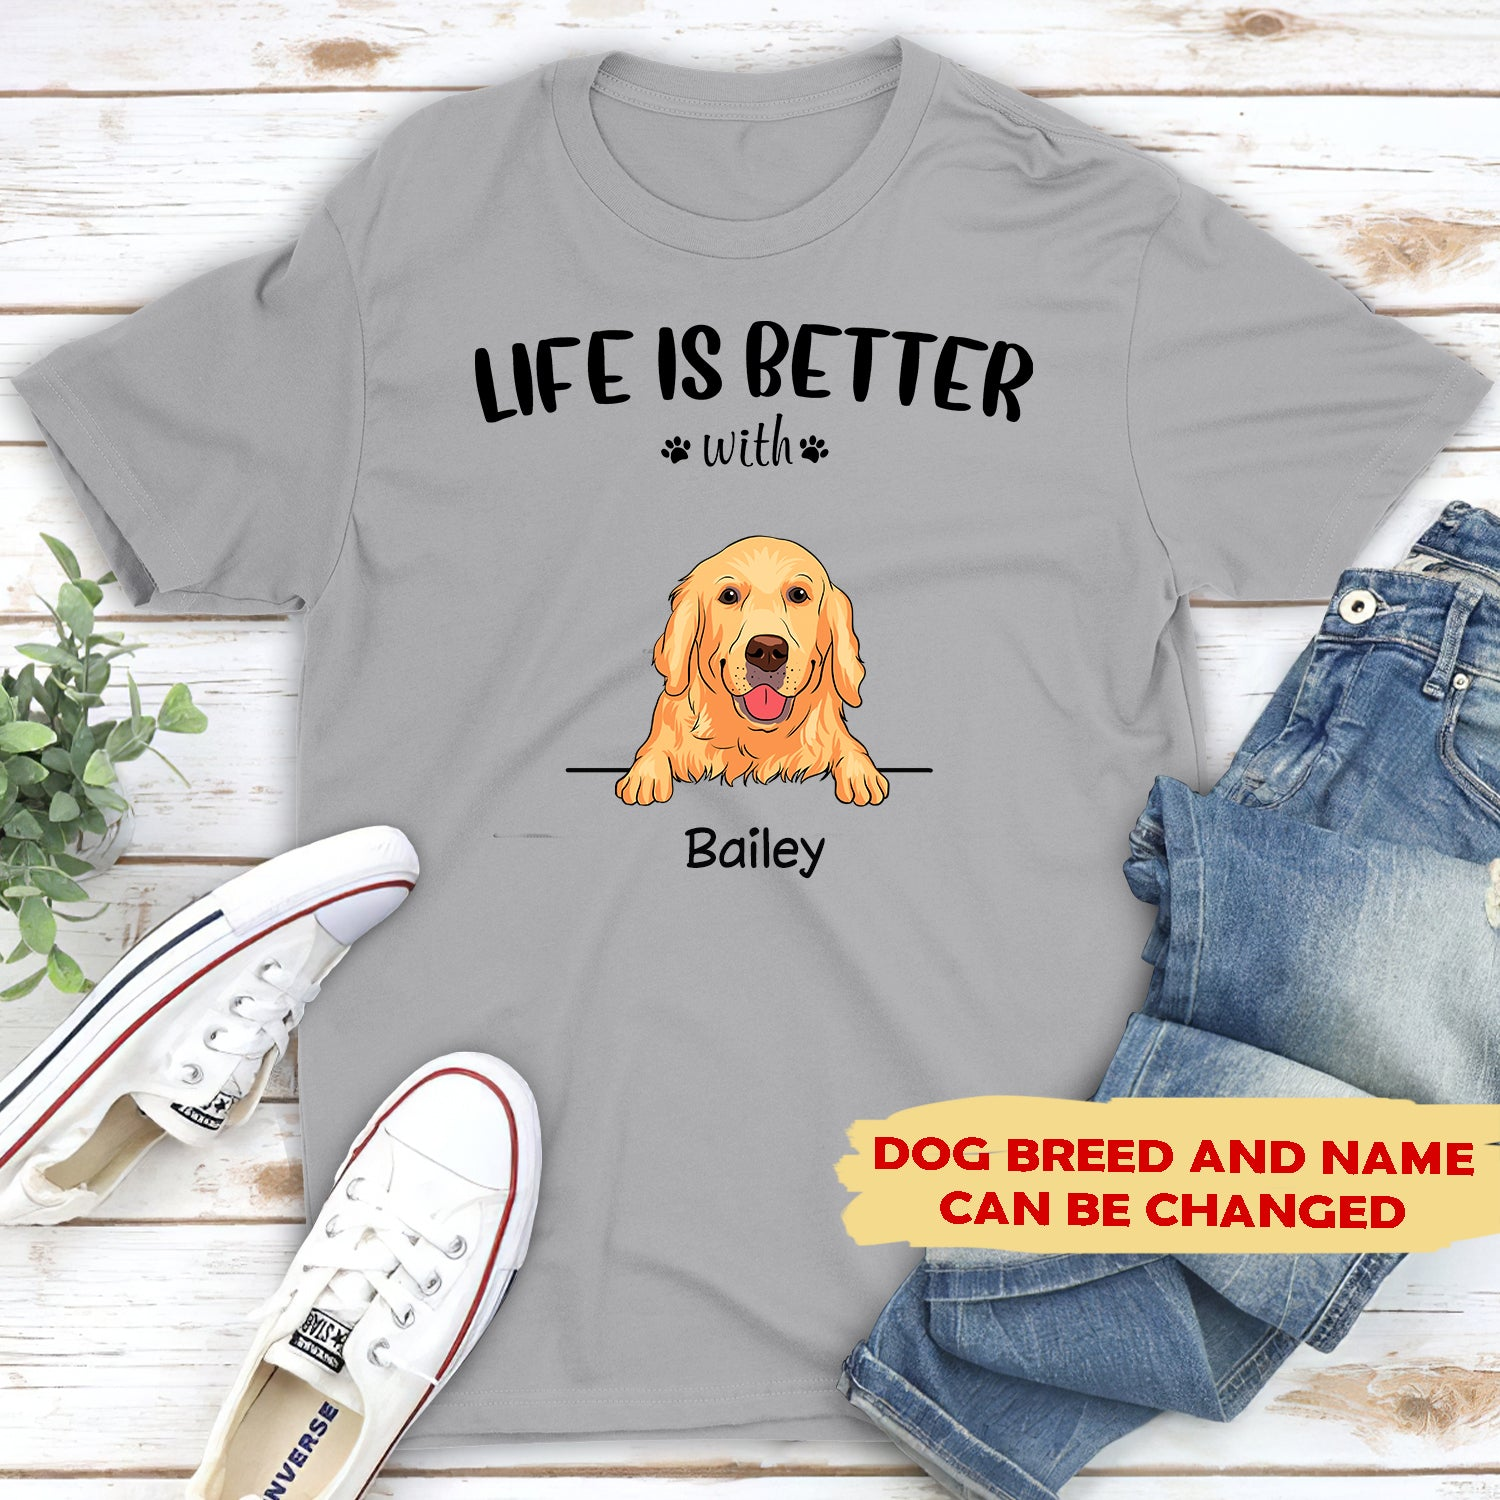 Be The Person Your Dog Thinks You Are T Shirt Slouch Fit Unisex Tee Love Dogs